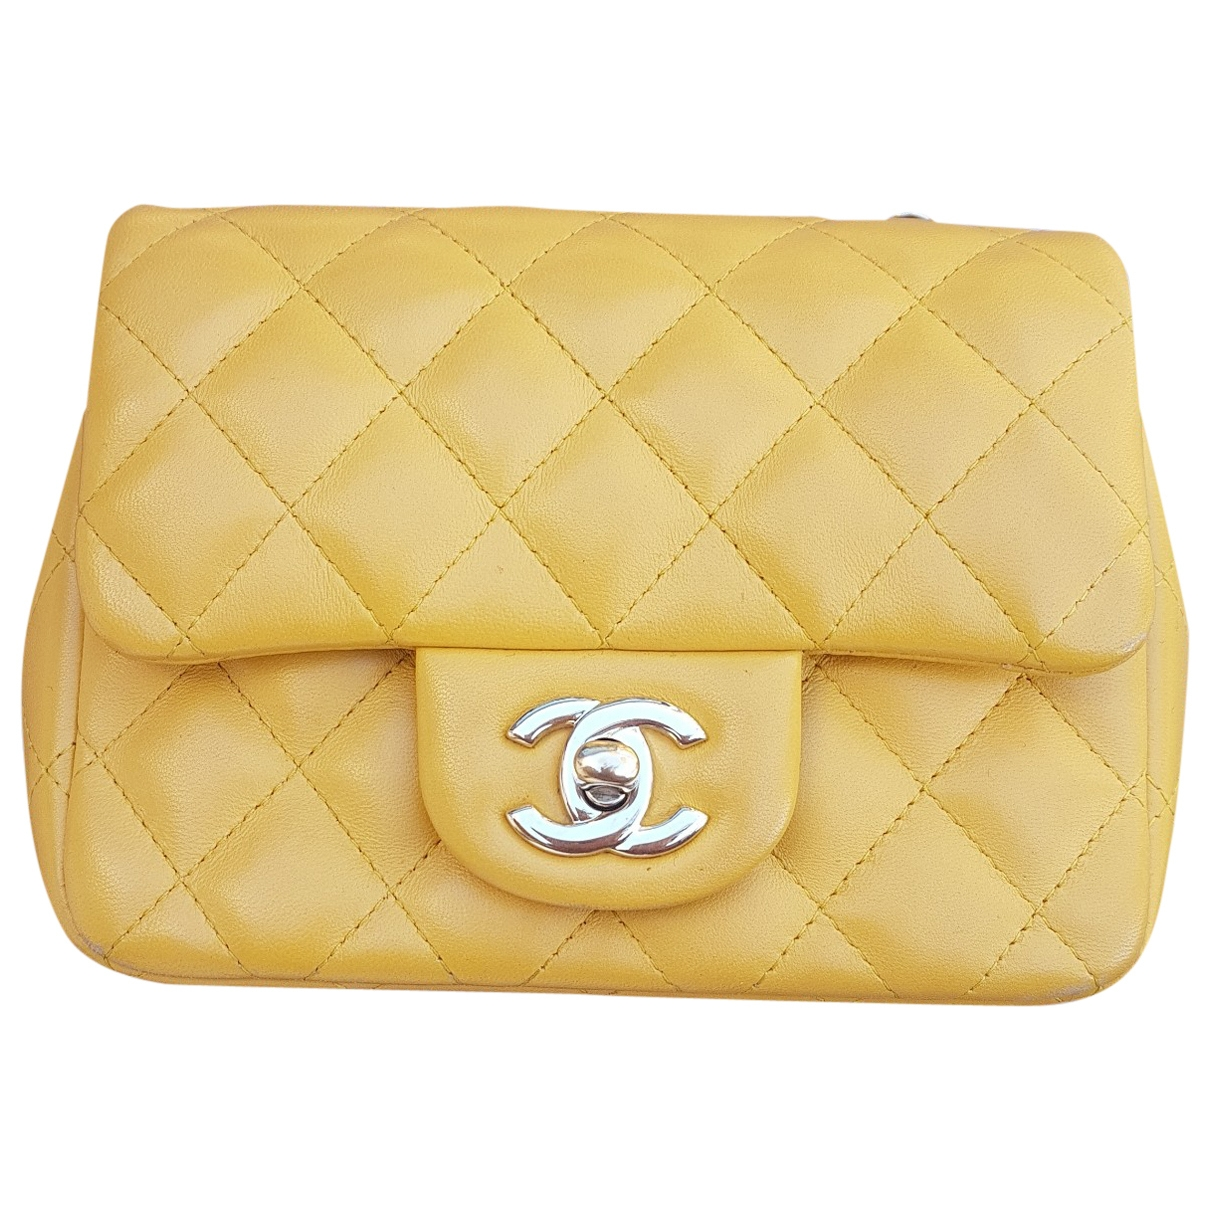 Chanel Timeless/Classique Yellow Leather handbag for Women \N